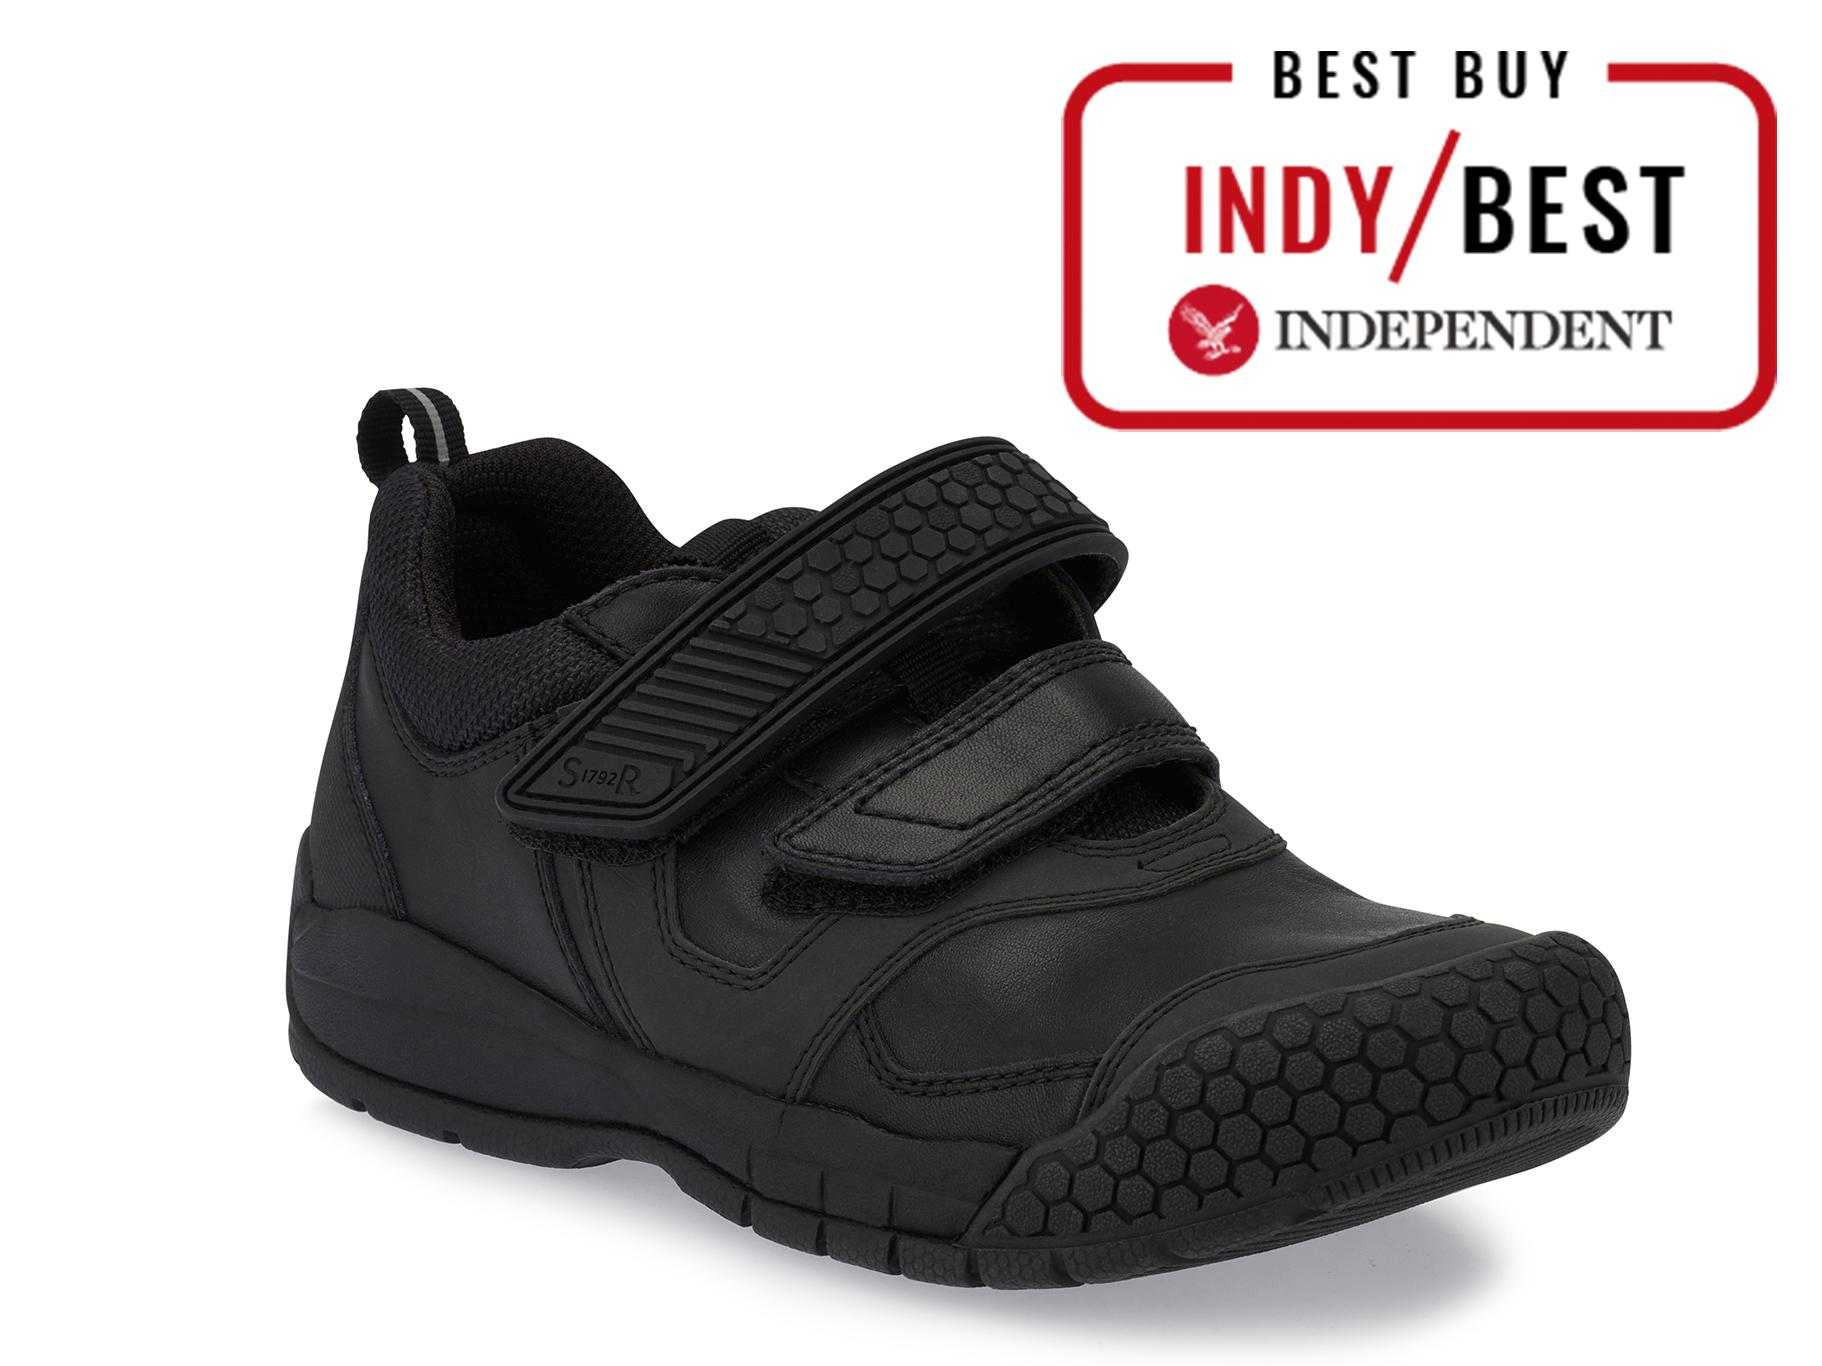 d9800d0cc872 11 best school shoes | The Independent